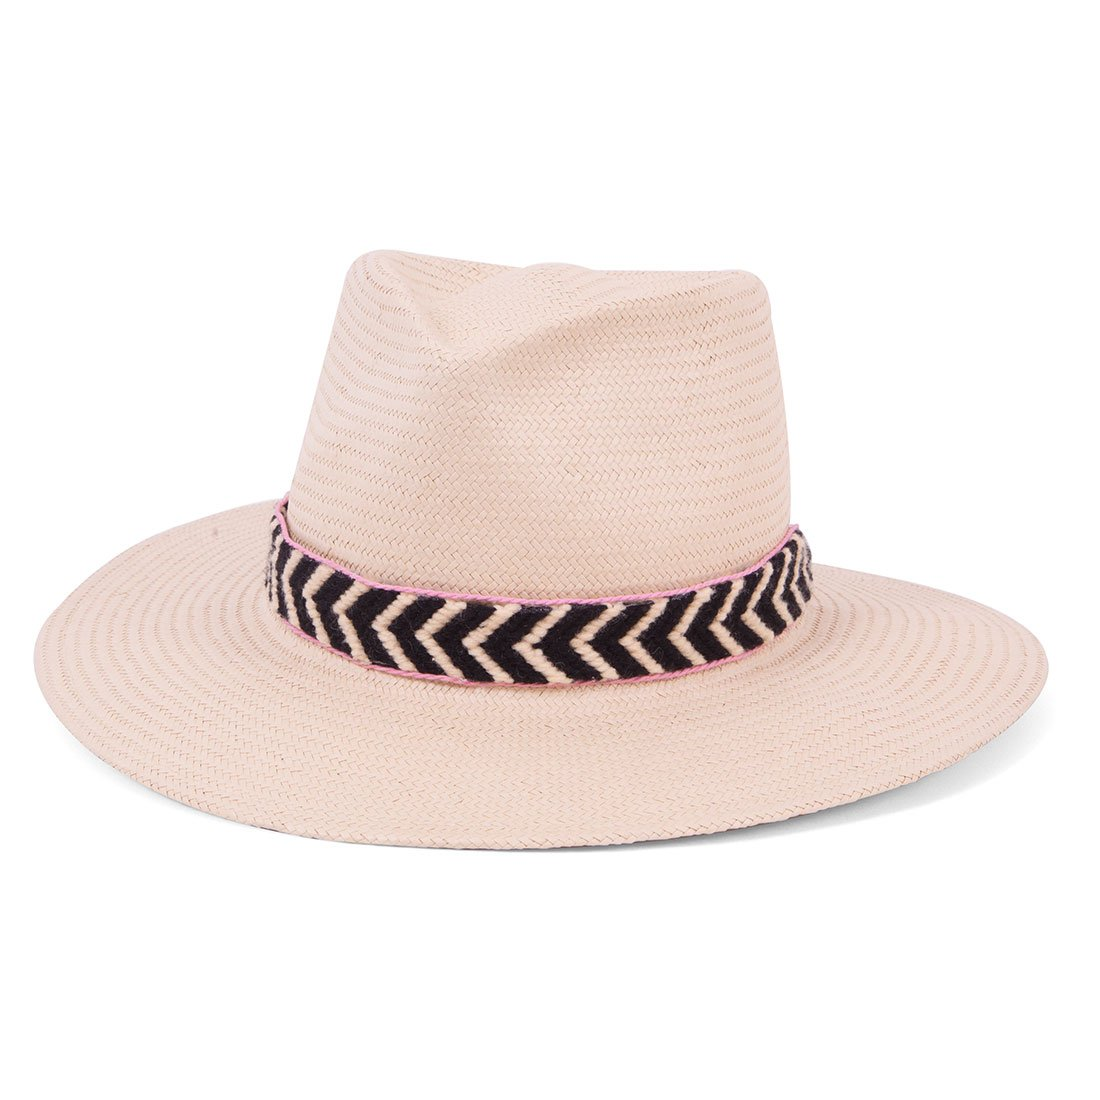 ale by Alessandra Women's Cartagena Fine Panama Sunhat Packable and Adjustable, Natural, One Size